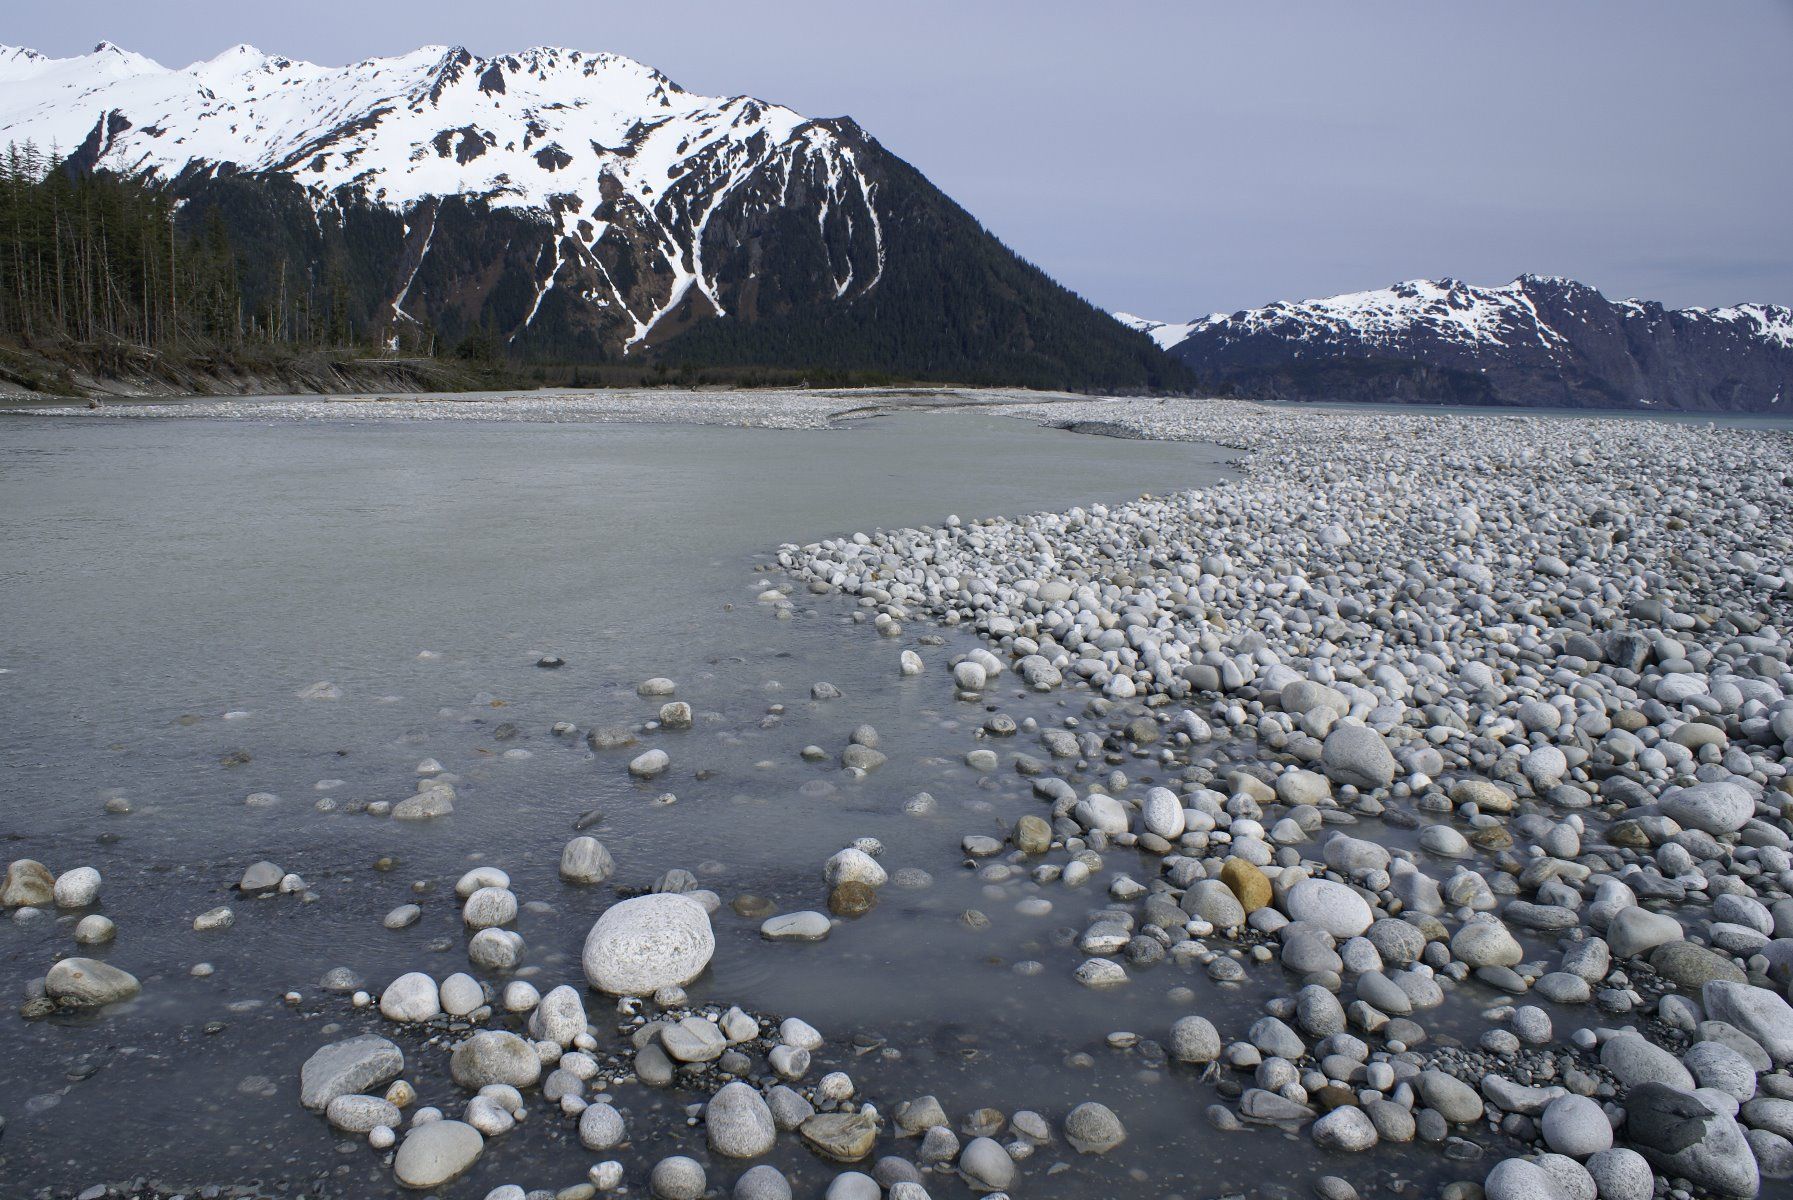 Cobble and boulder beaches on the outer edge of Glacier Bay National Park.